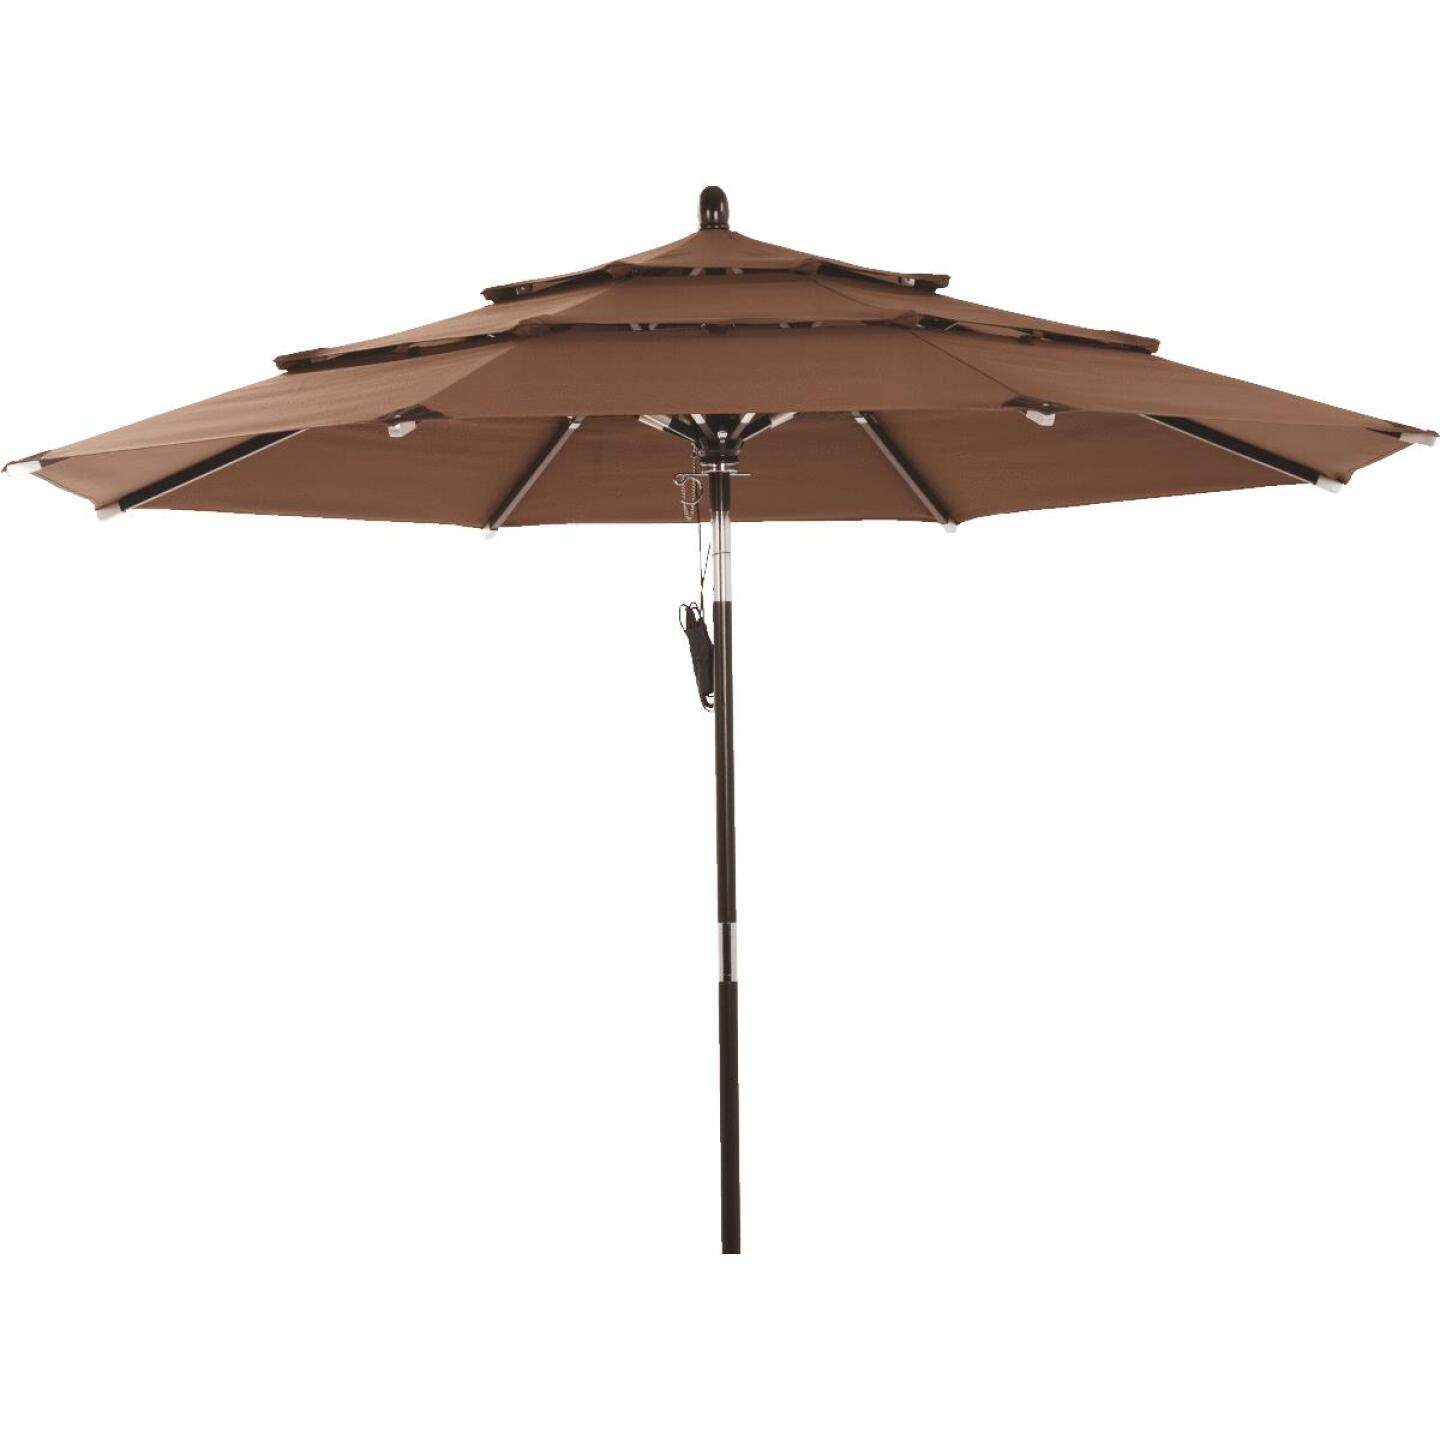 Outdoor Expressions 9 Ft. 3-Tier Tilt/Pulley Brown Patio Umbrella Image 1